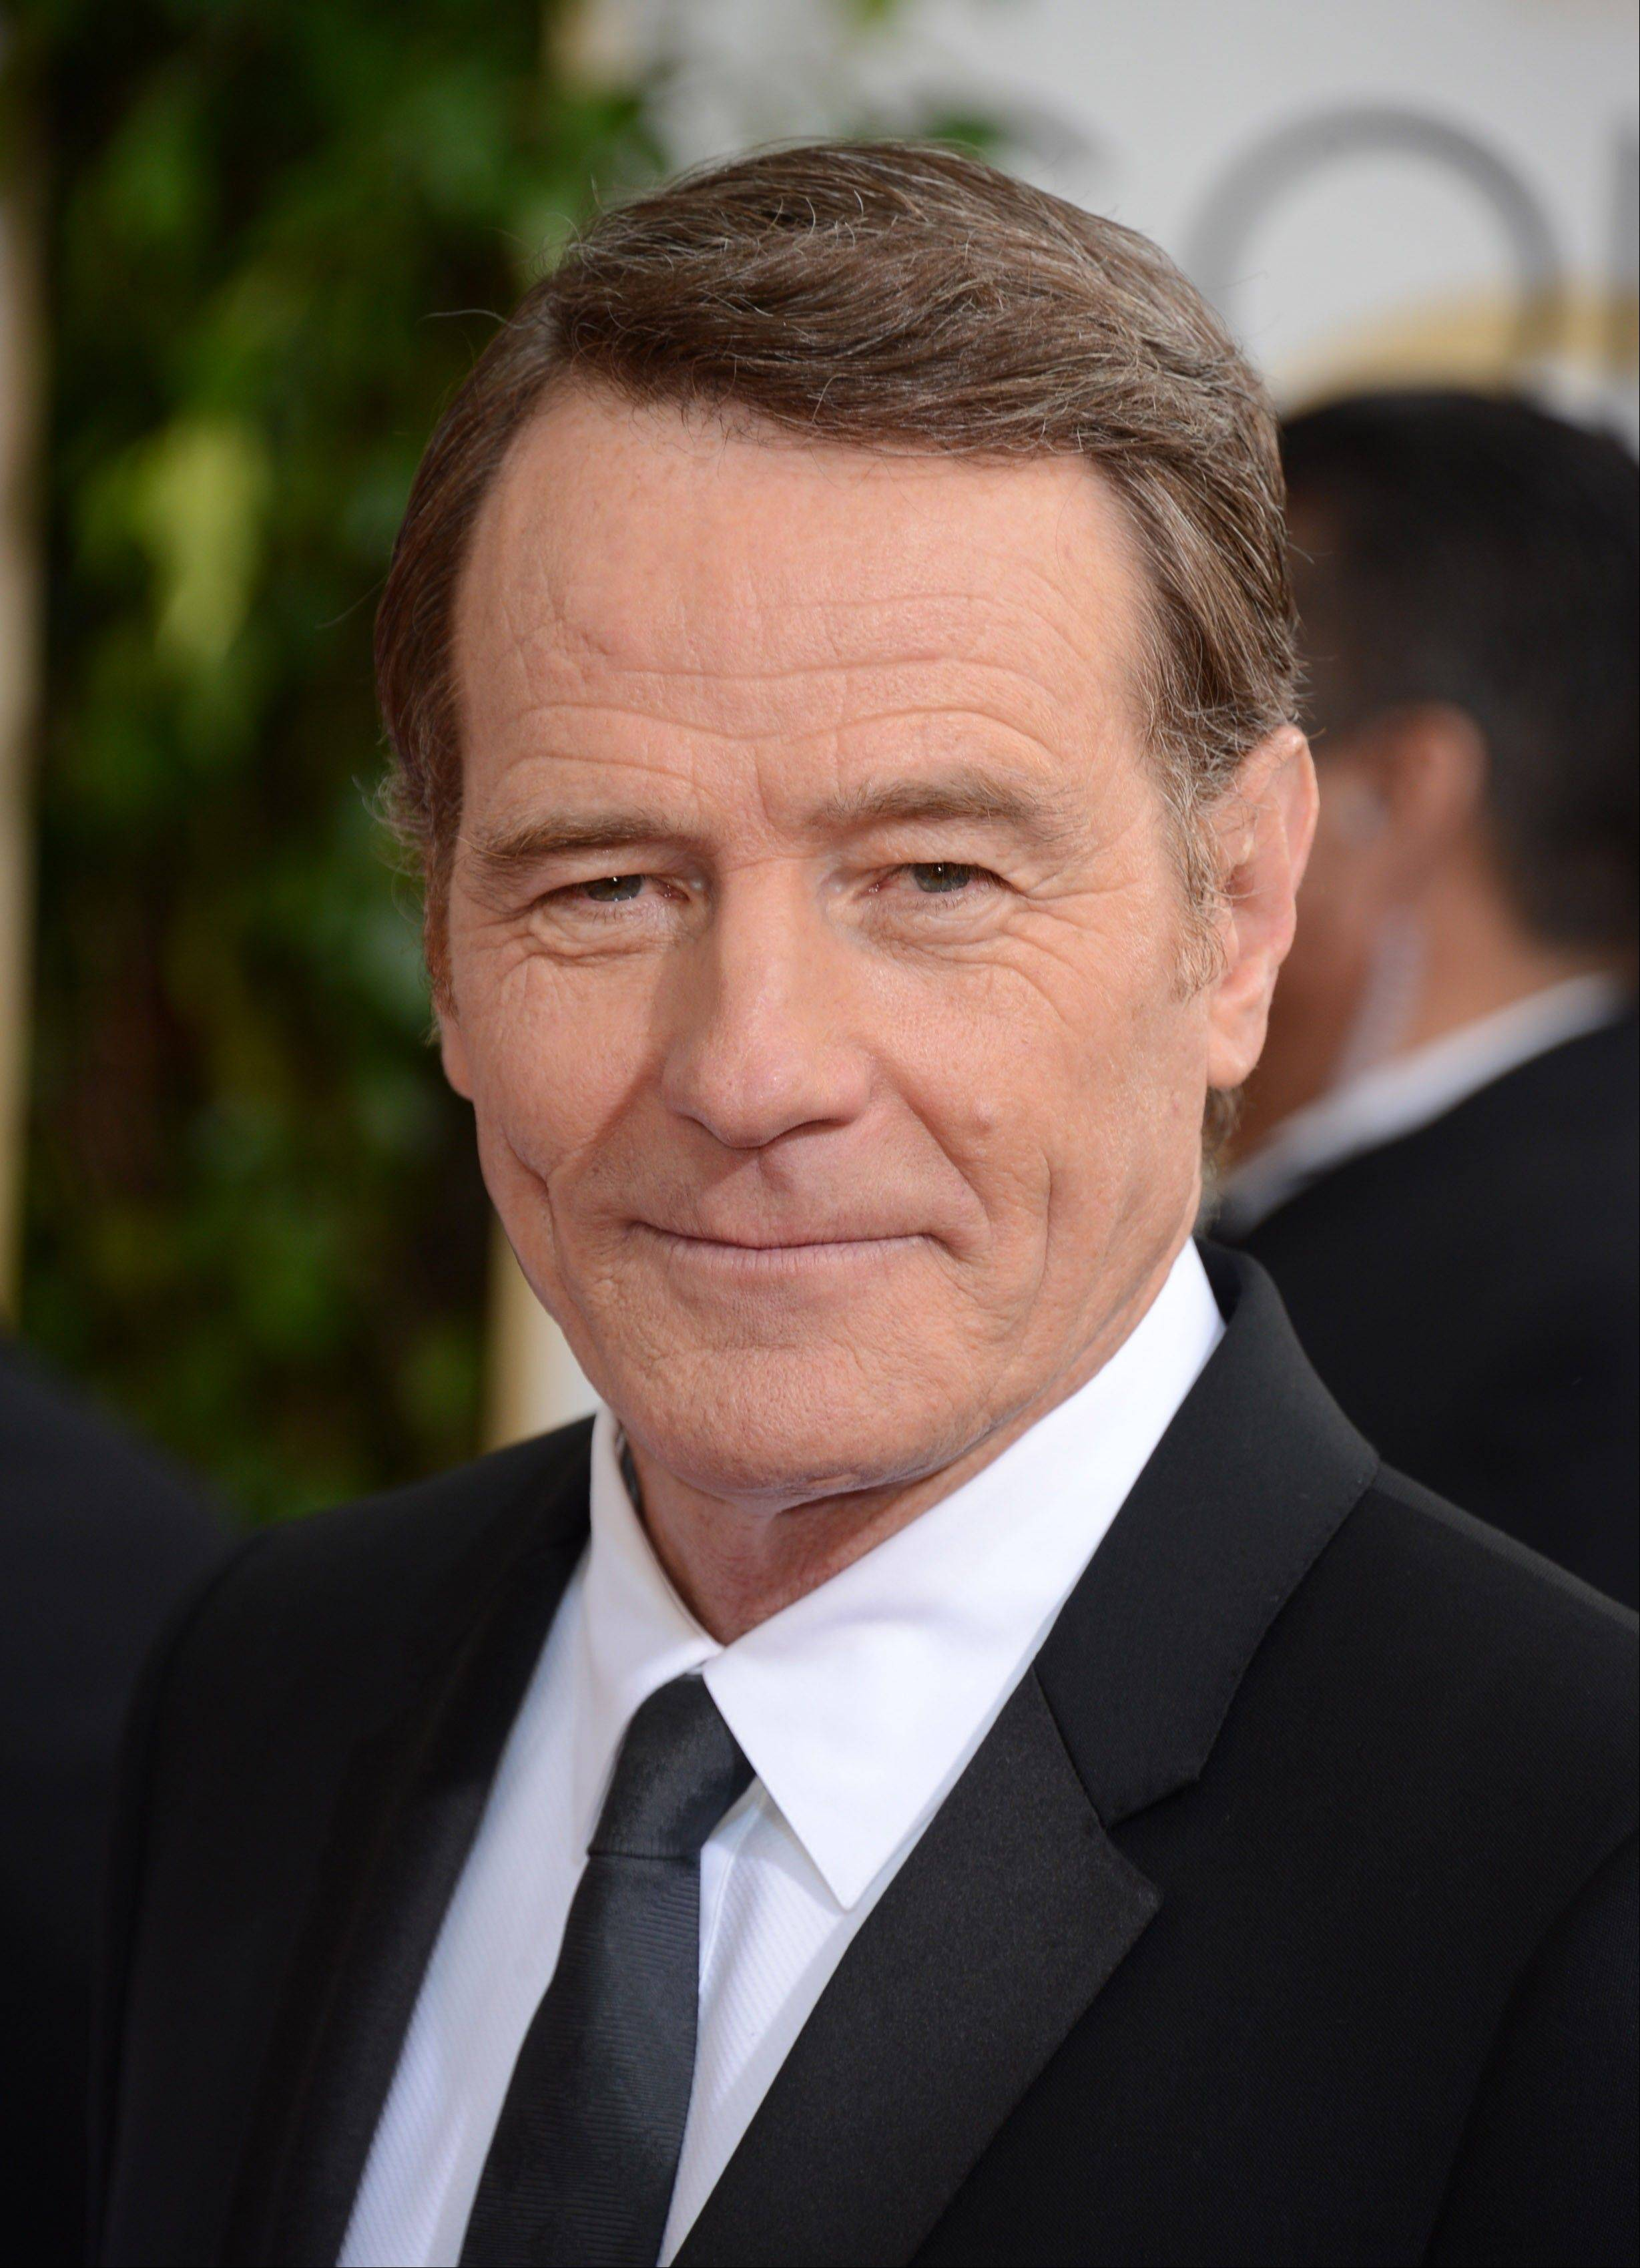 """Breaking Bad"" star Bryan Cranston arrives at the 71st annual Golden Globe Awards."